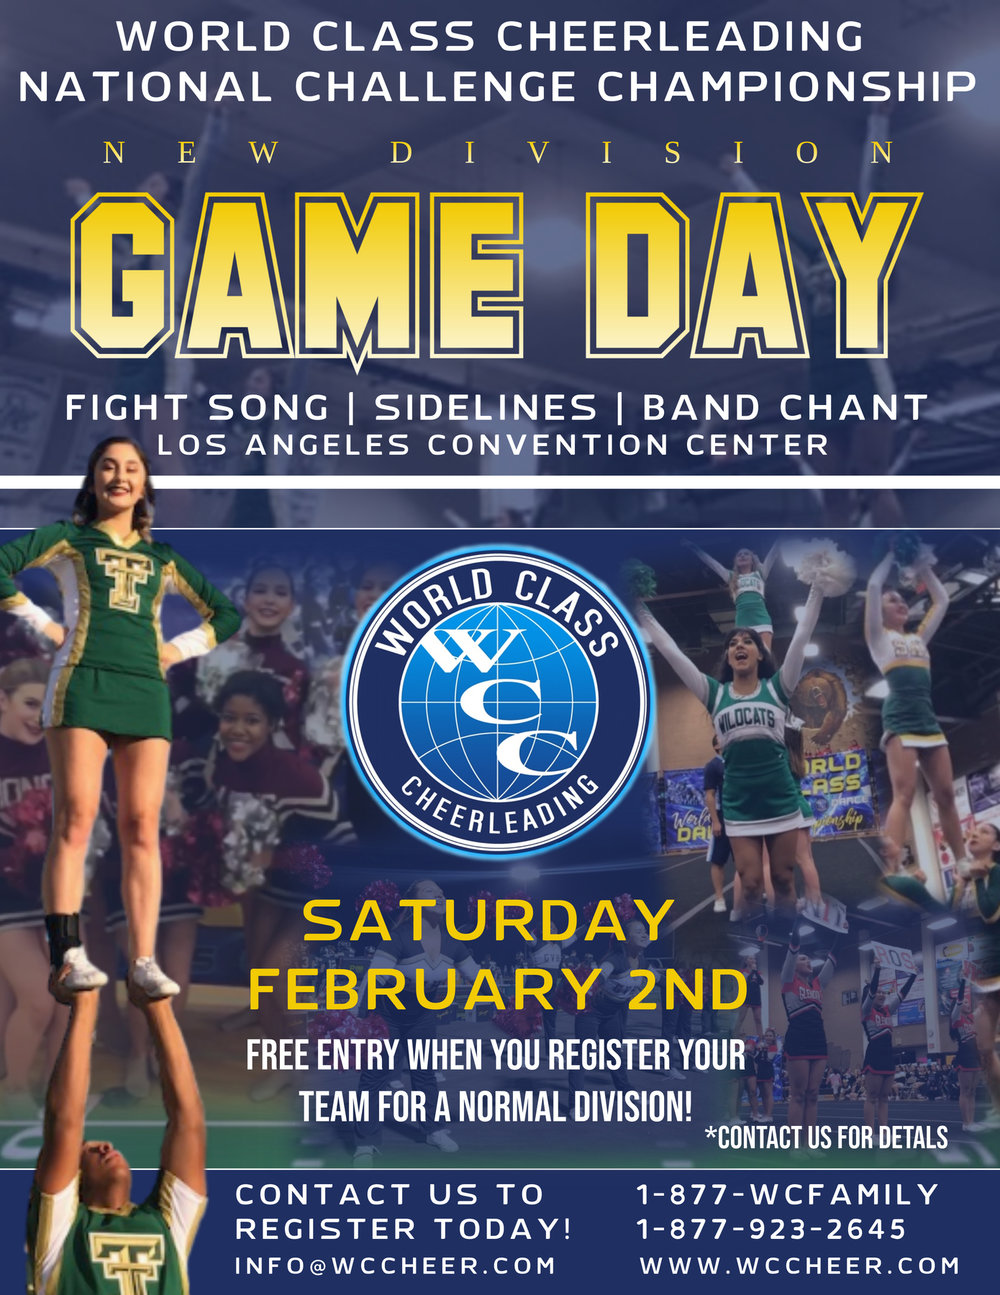 We enjoy receiving feedback and putting our WCC family first, with that said, we are excited to announce our  GAME DAY  division at our  National Challenge Championship !  Our  GAME DAY  division is great for schools who would like to perform and compete with your fight song, sideline routine, and band chant performance routine that energizes the crowd with your team's spirit-leading skills.  Please feel free to email us at  info@wccheer.com